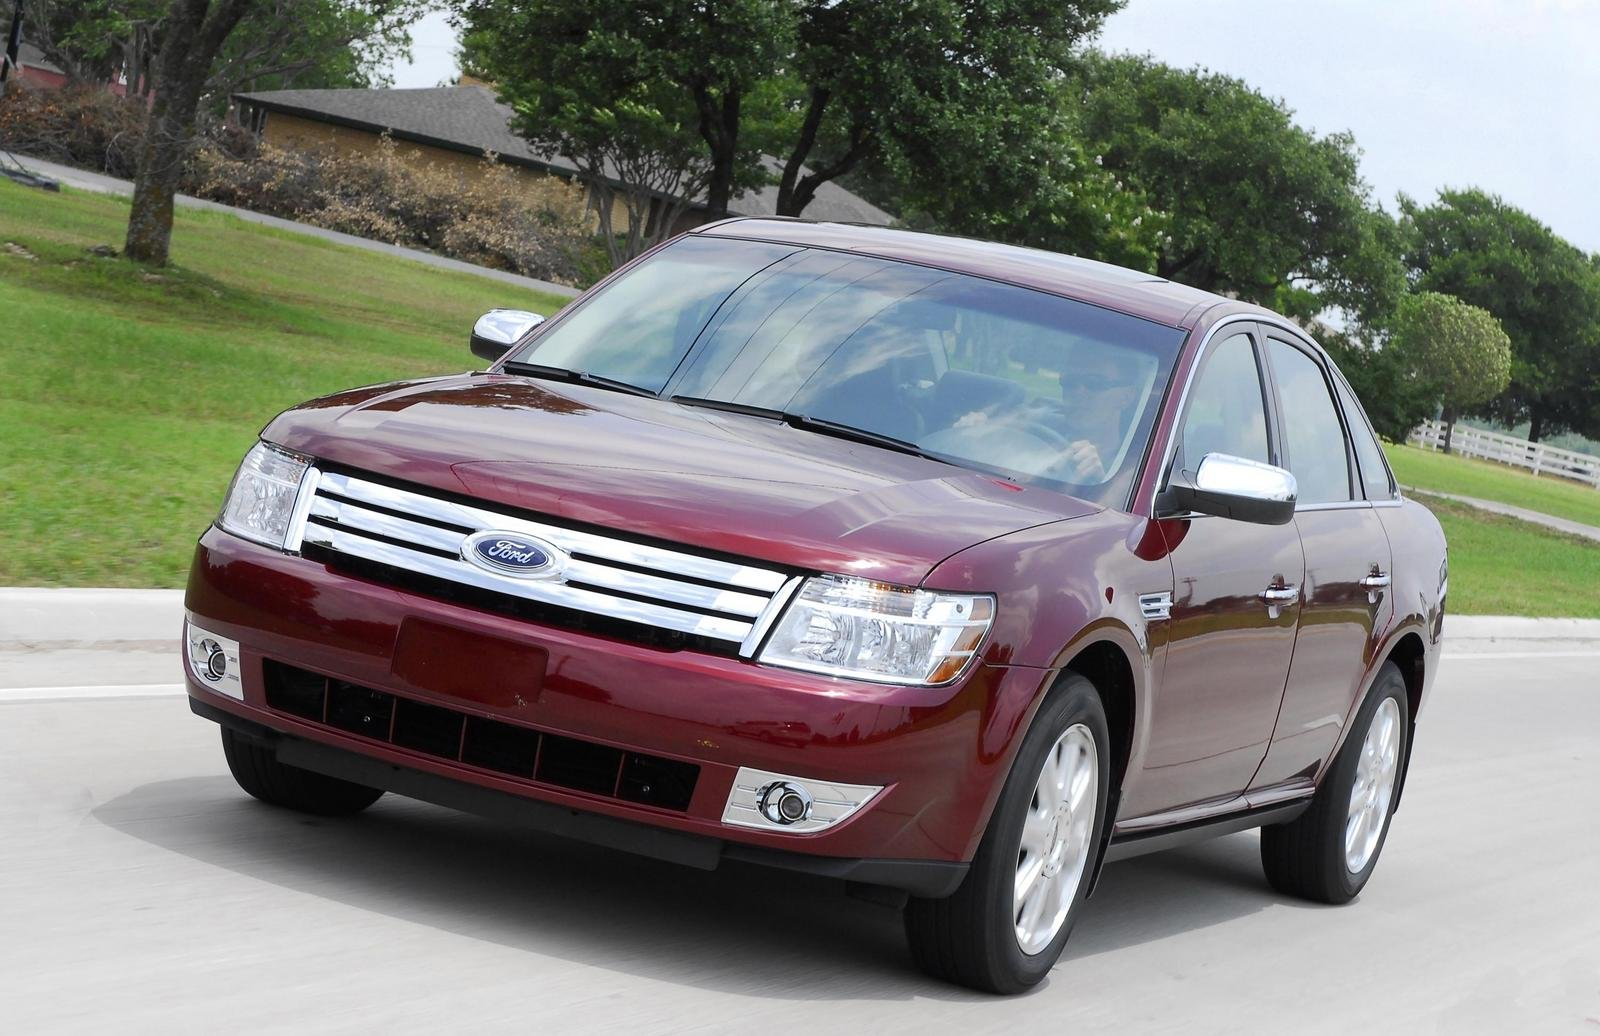 2008 ford taurus named family car of the year news top speed. Black Bedroom Furniture Sets. Home Design Ideas